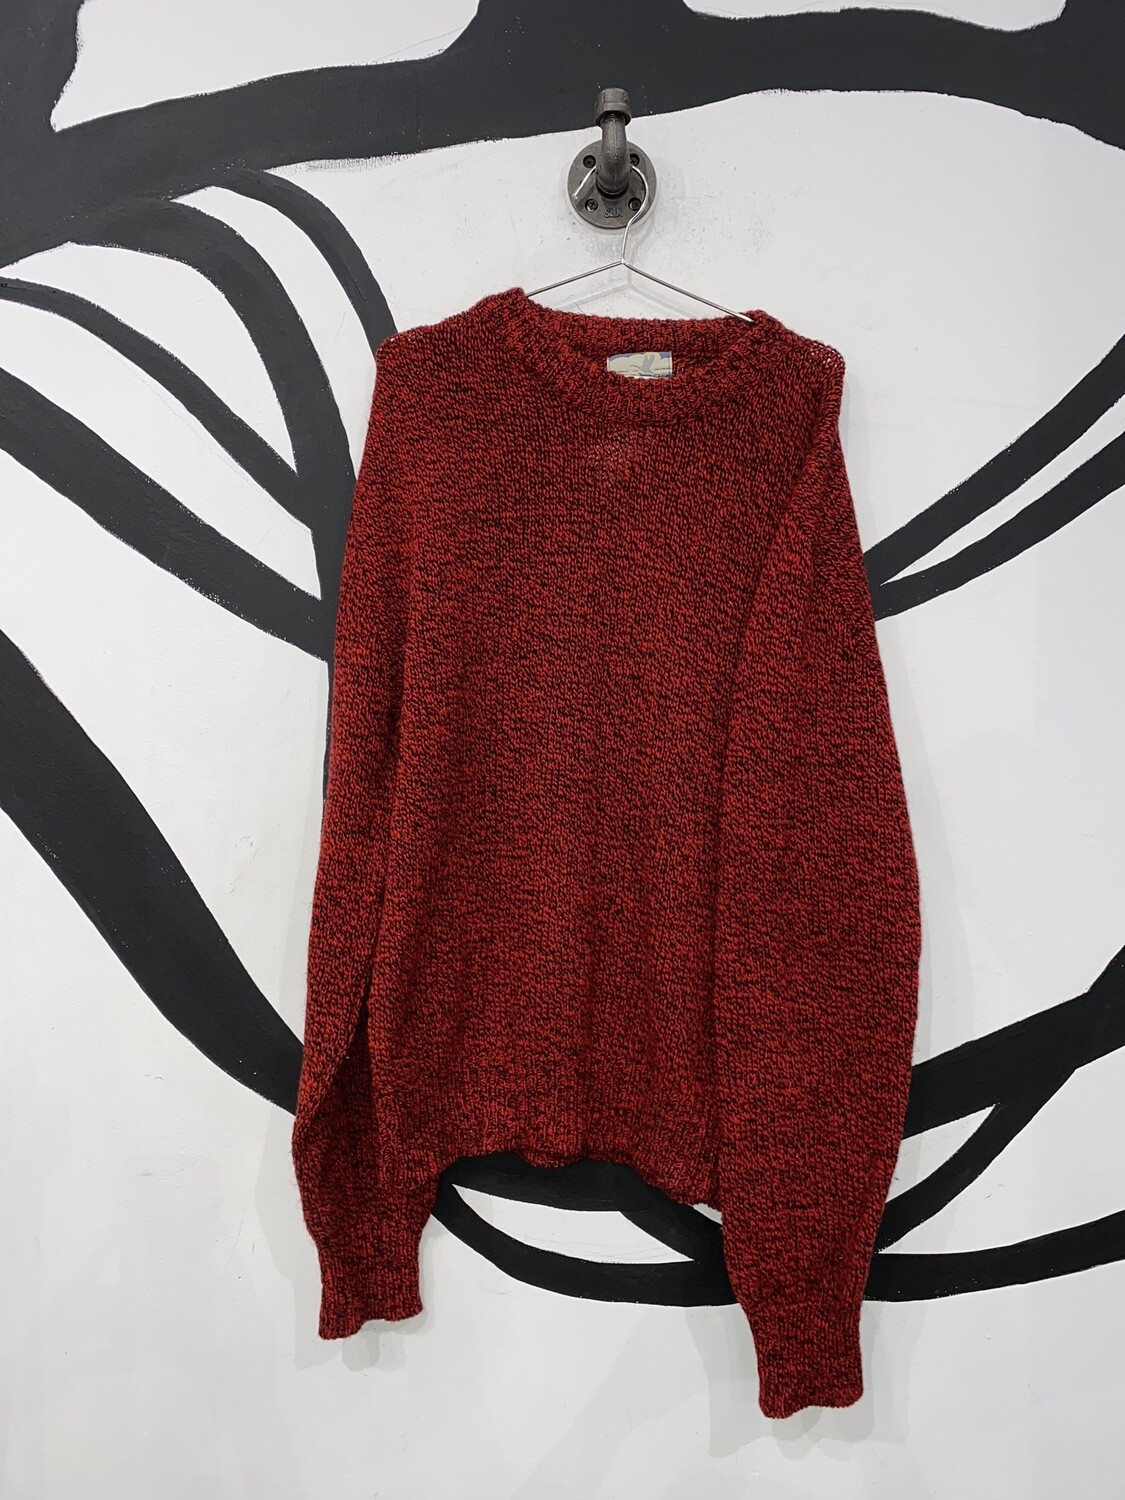 Tidewater Traders Red Knit Sweater Size L